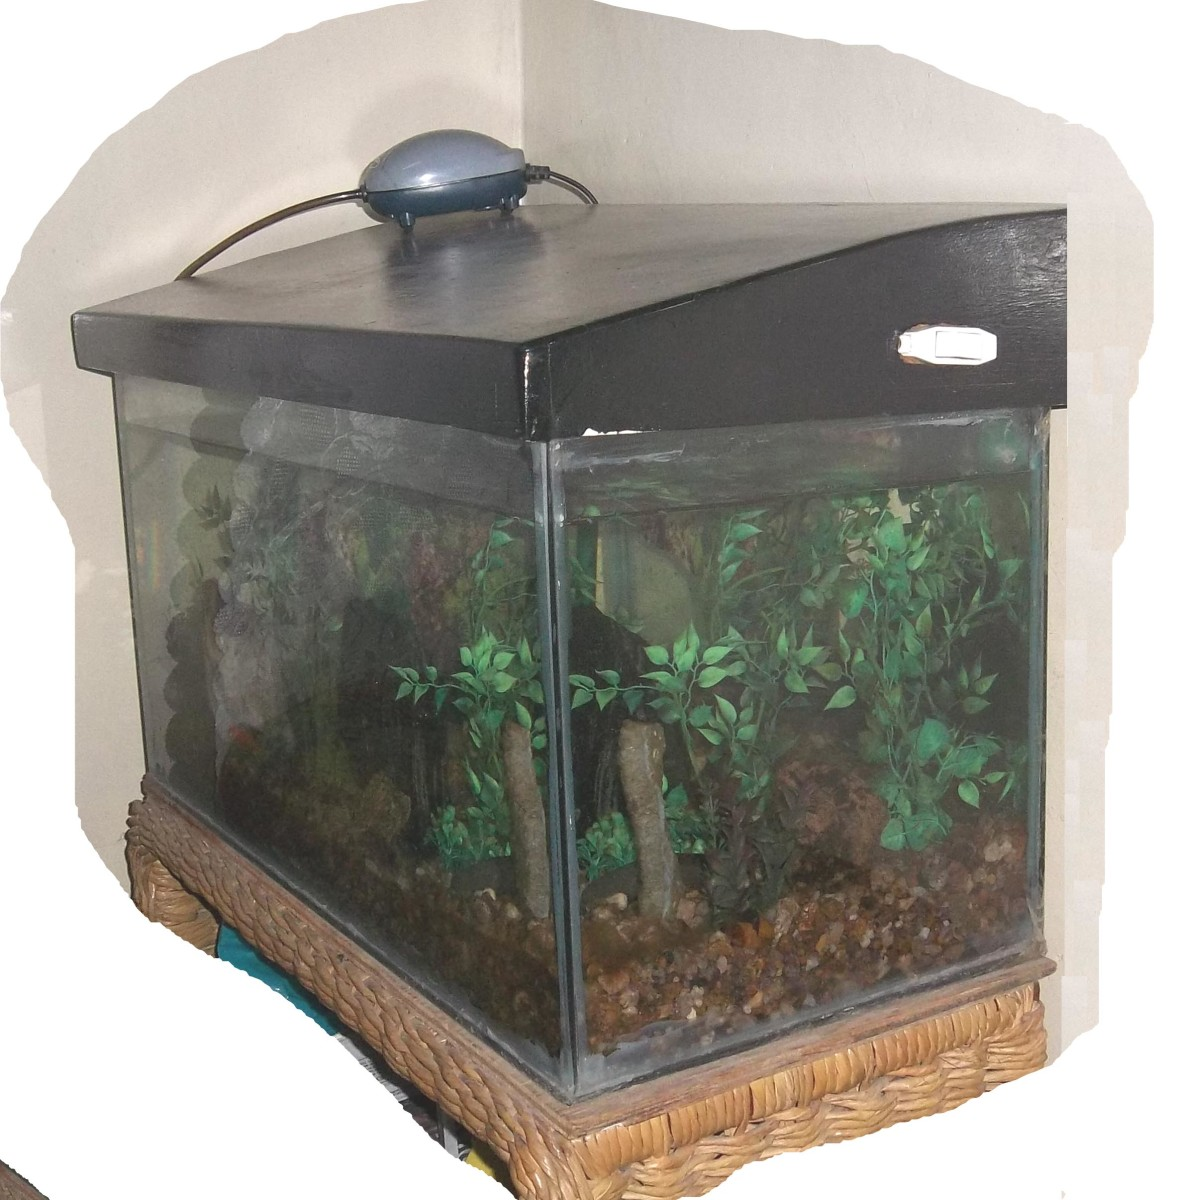 An aquarium with a light unit and air pump on top of the glass tank